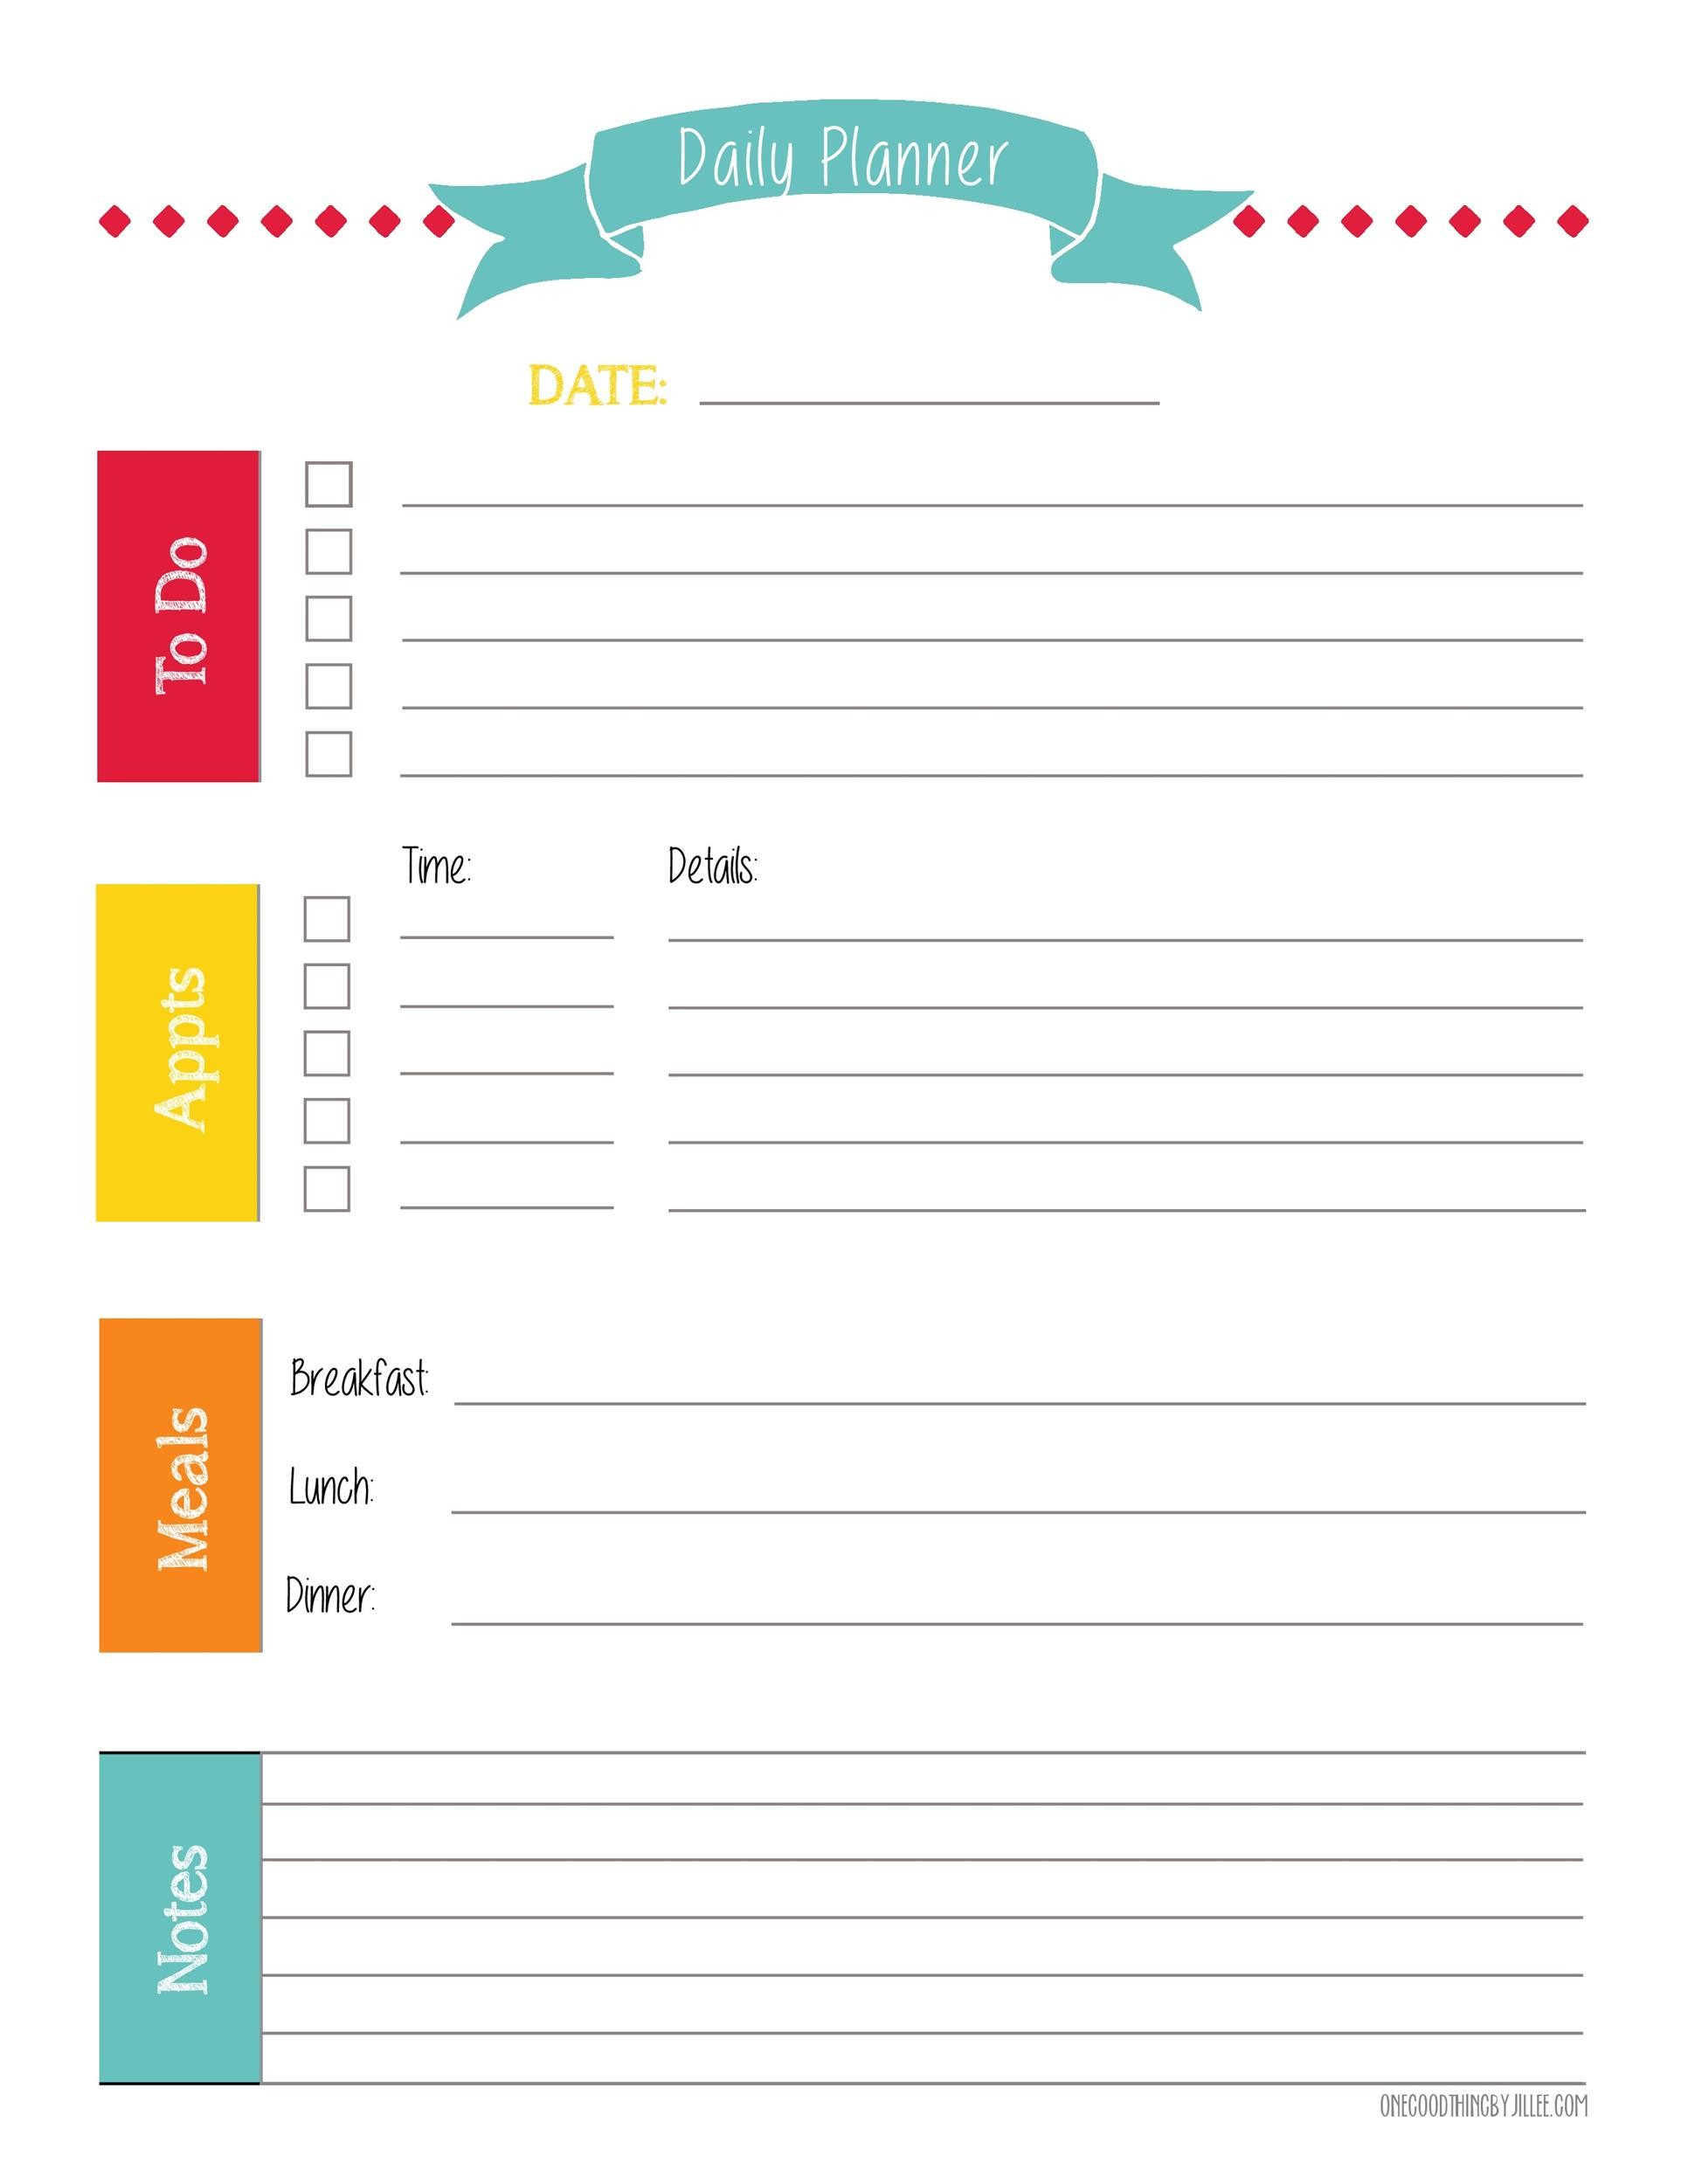 Printable Daily Planner Template 34  Downloadable Daily Planner